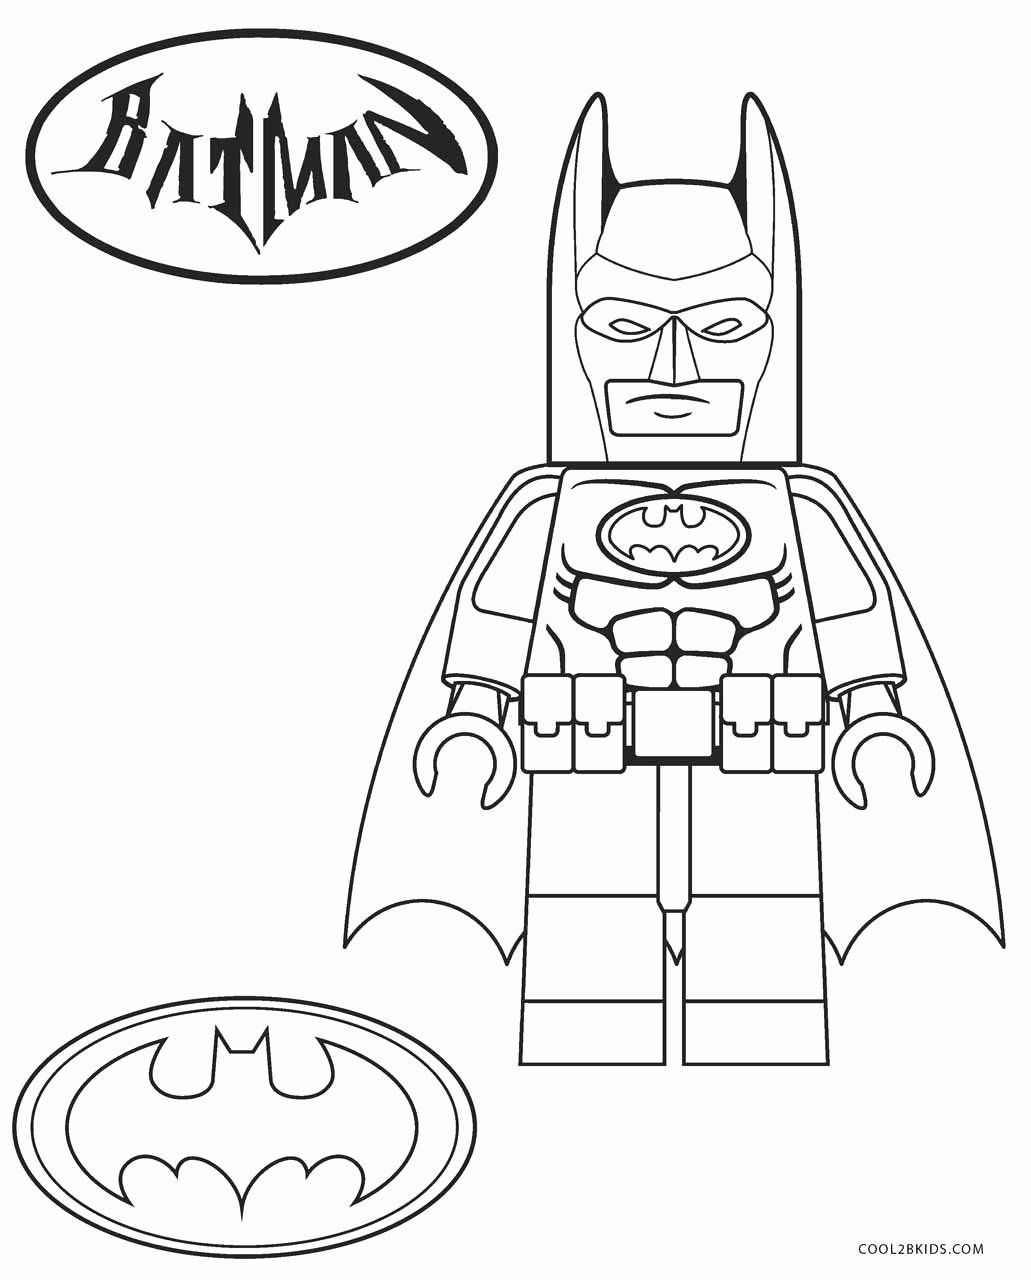 Pin On Coloring Pages Book Ideas Printable